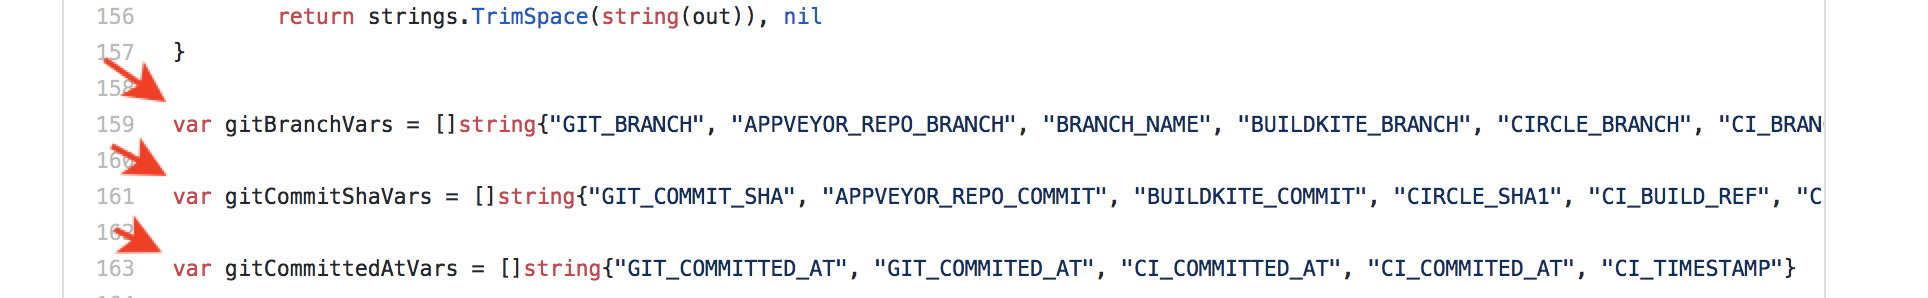 Test Coverage - Branch Names